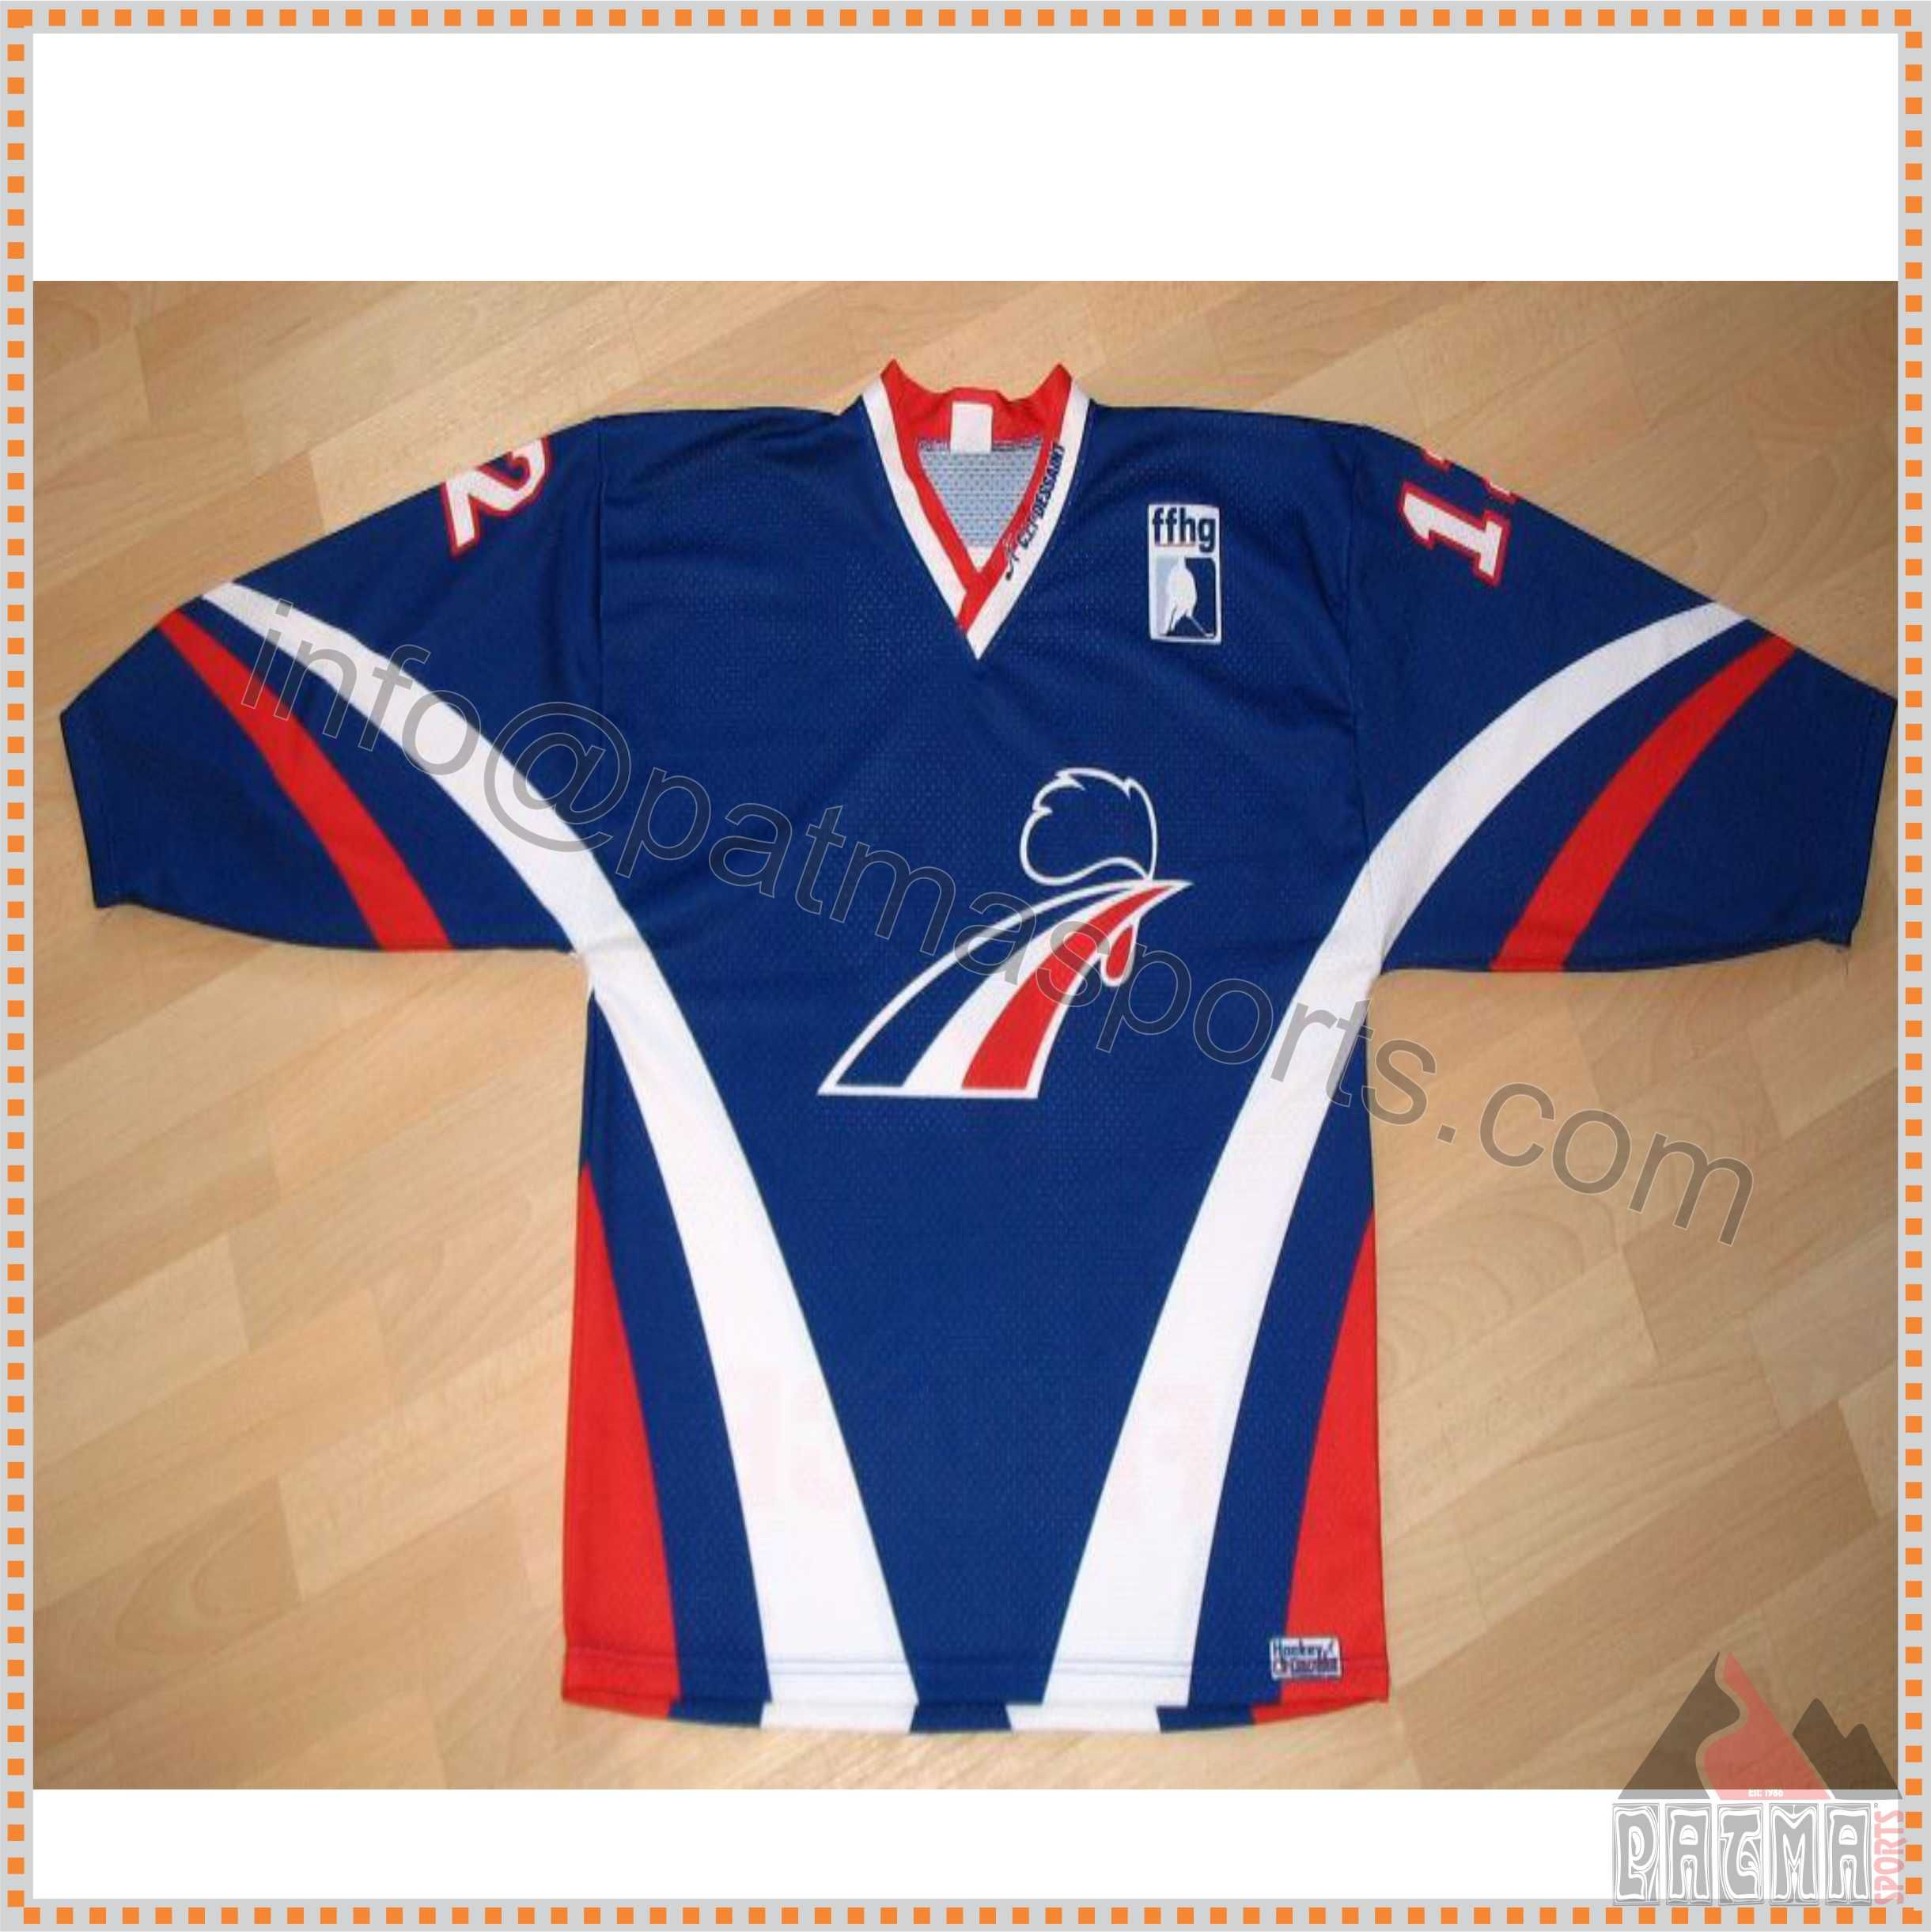 official nhl jersey manufacturer